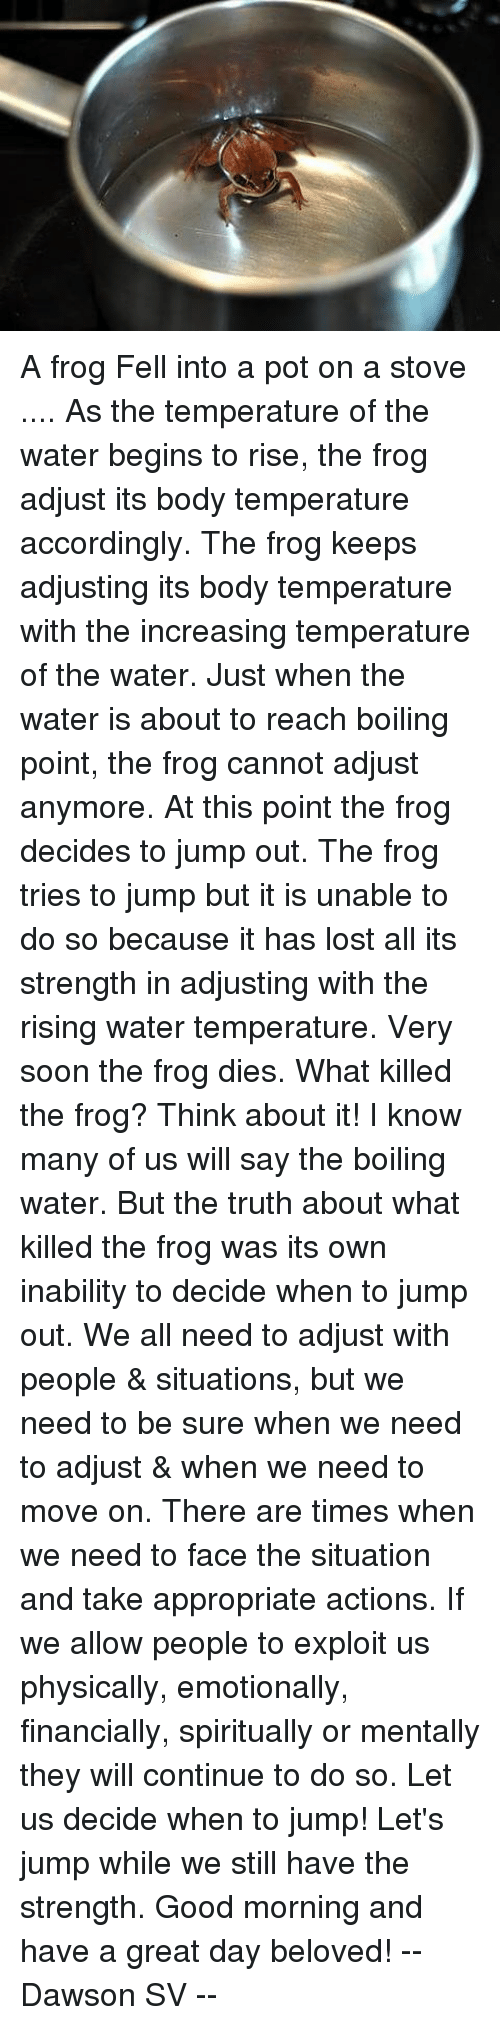 pot: A frog Fell into a pot on a stove .... As the temperature of the water begins to rise, the frog adjust its body temperature accordingly. The frog keeps adjusting its body temperature with the increasing temperature of the water. Just when the water is about to reach boiling point, the frog cannot adjust anymore. At this point the frog decides to jump out. The frog tries to jump but it is unable to do so because it has lost all its strength in adjusting with the rising water temperature. Very soon the frog dies. What killed the frog? Think about it! I know many of us will say the boiling water. But the truth about what killed the frog was its own inability to decide when to jump out. We all need to adjust with people & situations, but we need to be sure when we need to adjust & when we need to move on. There are times when we need to face the situation and take appropriate actions. If we allow people to exploit us physically, emotionally, financially, spiritually or mentally they will continue to do so. Let us decide when to jump! Let's jump while we still have the strength. Good morning and have a great day beloved! -- Dawson SV --